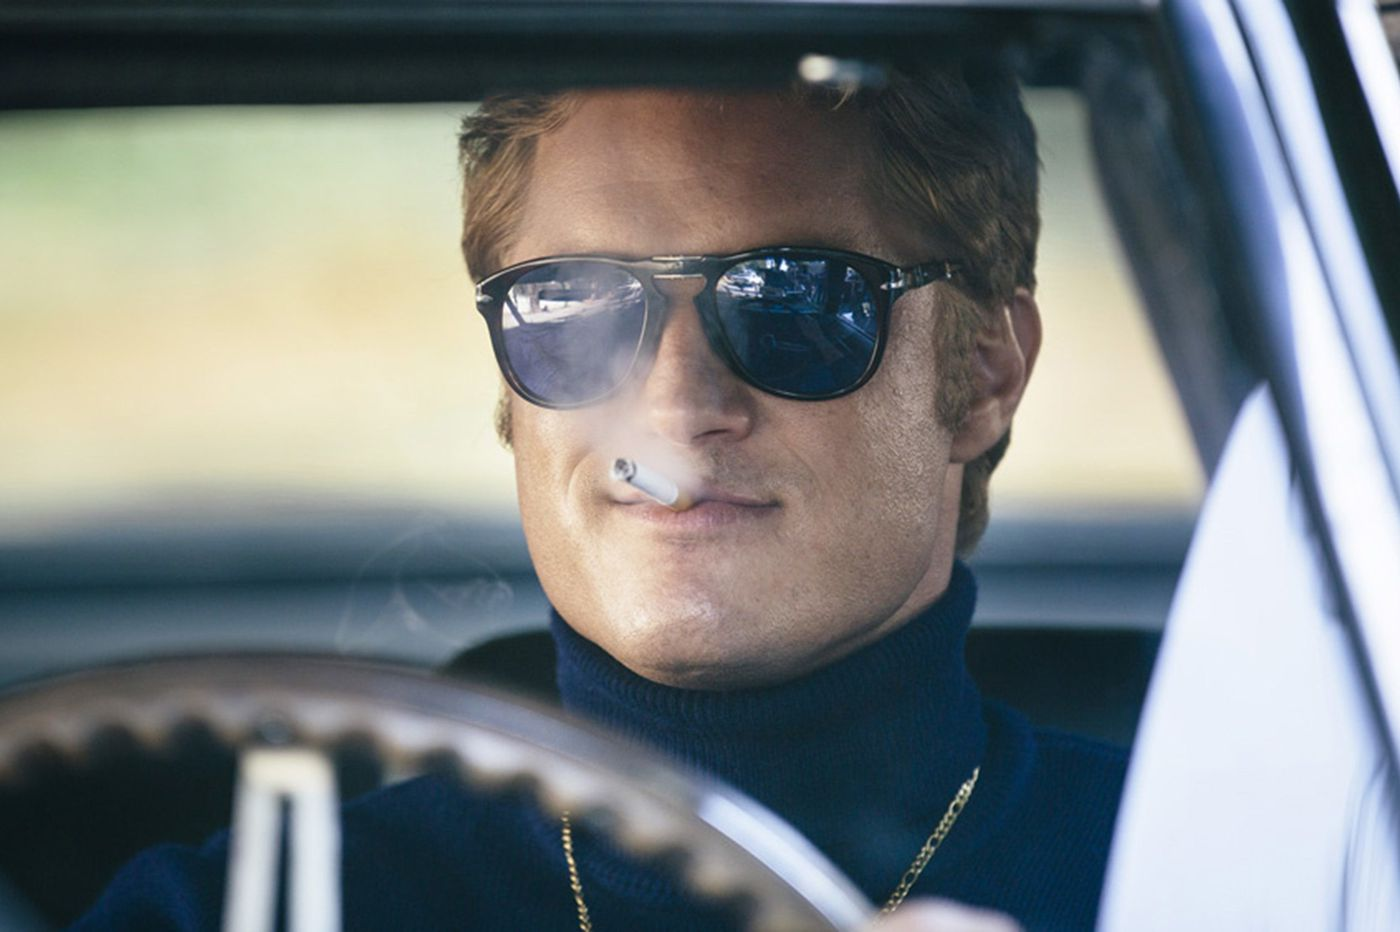 'Finding Steve McQueen': In so-so heist movie, a bank robber loses his vaulting ambition | Movie review